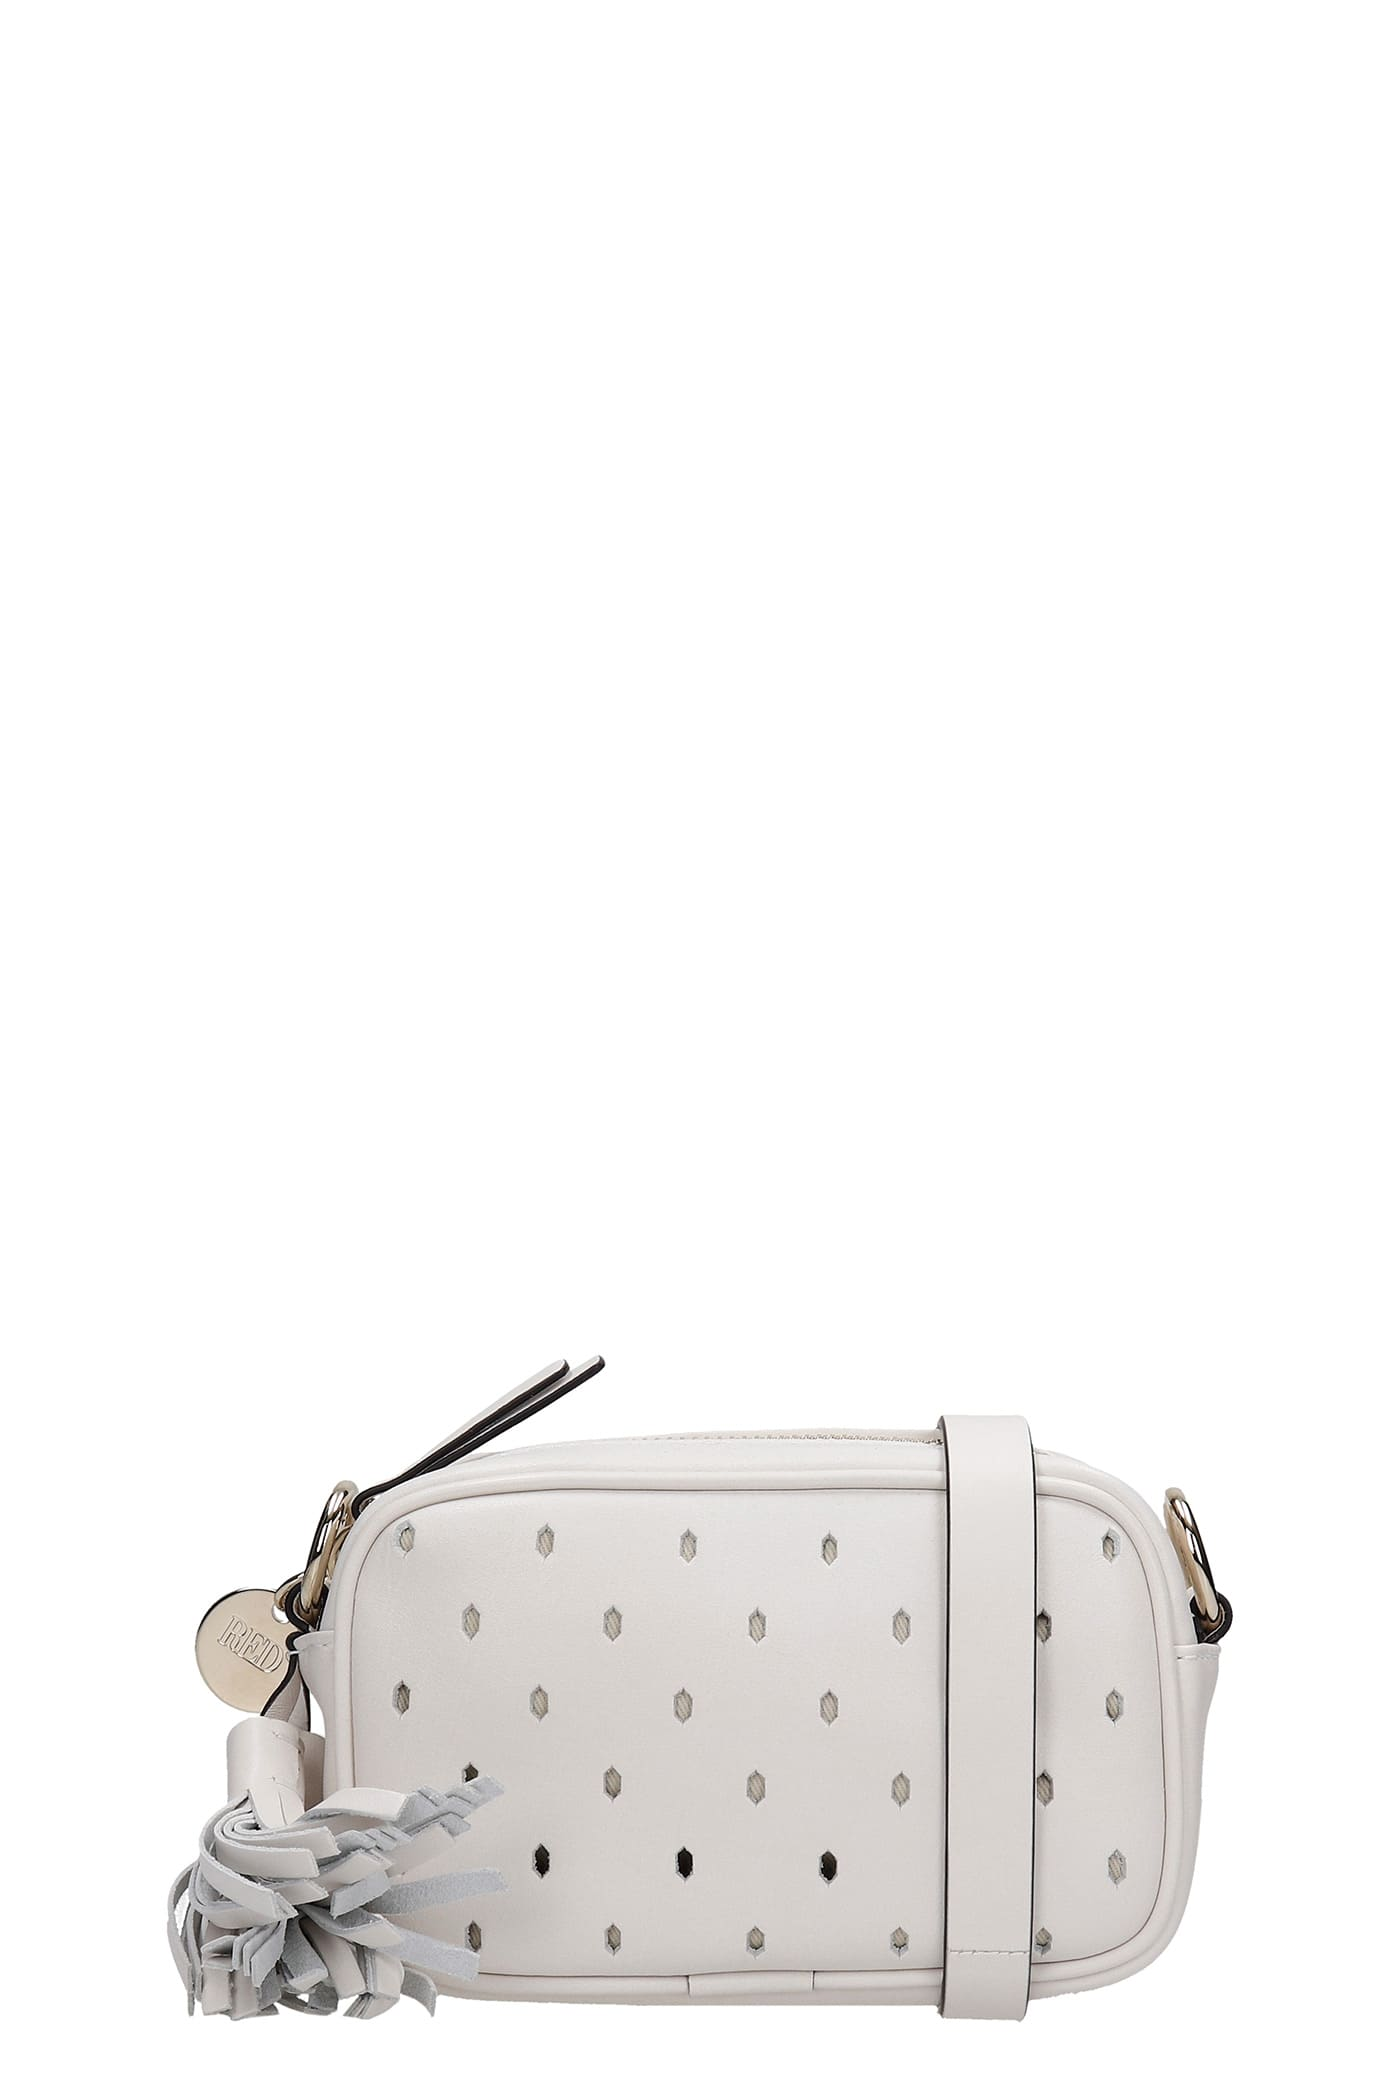 RED Valentino Shoulder Bag In White Leather